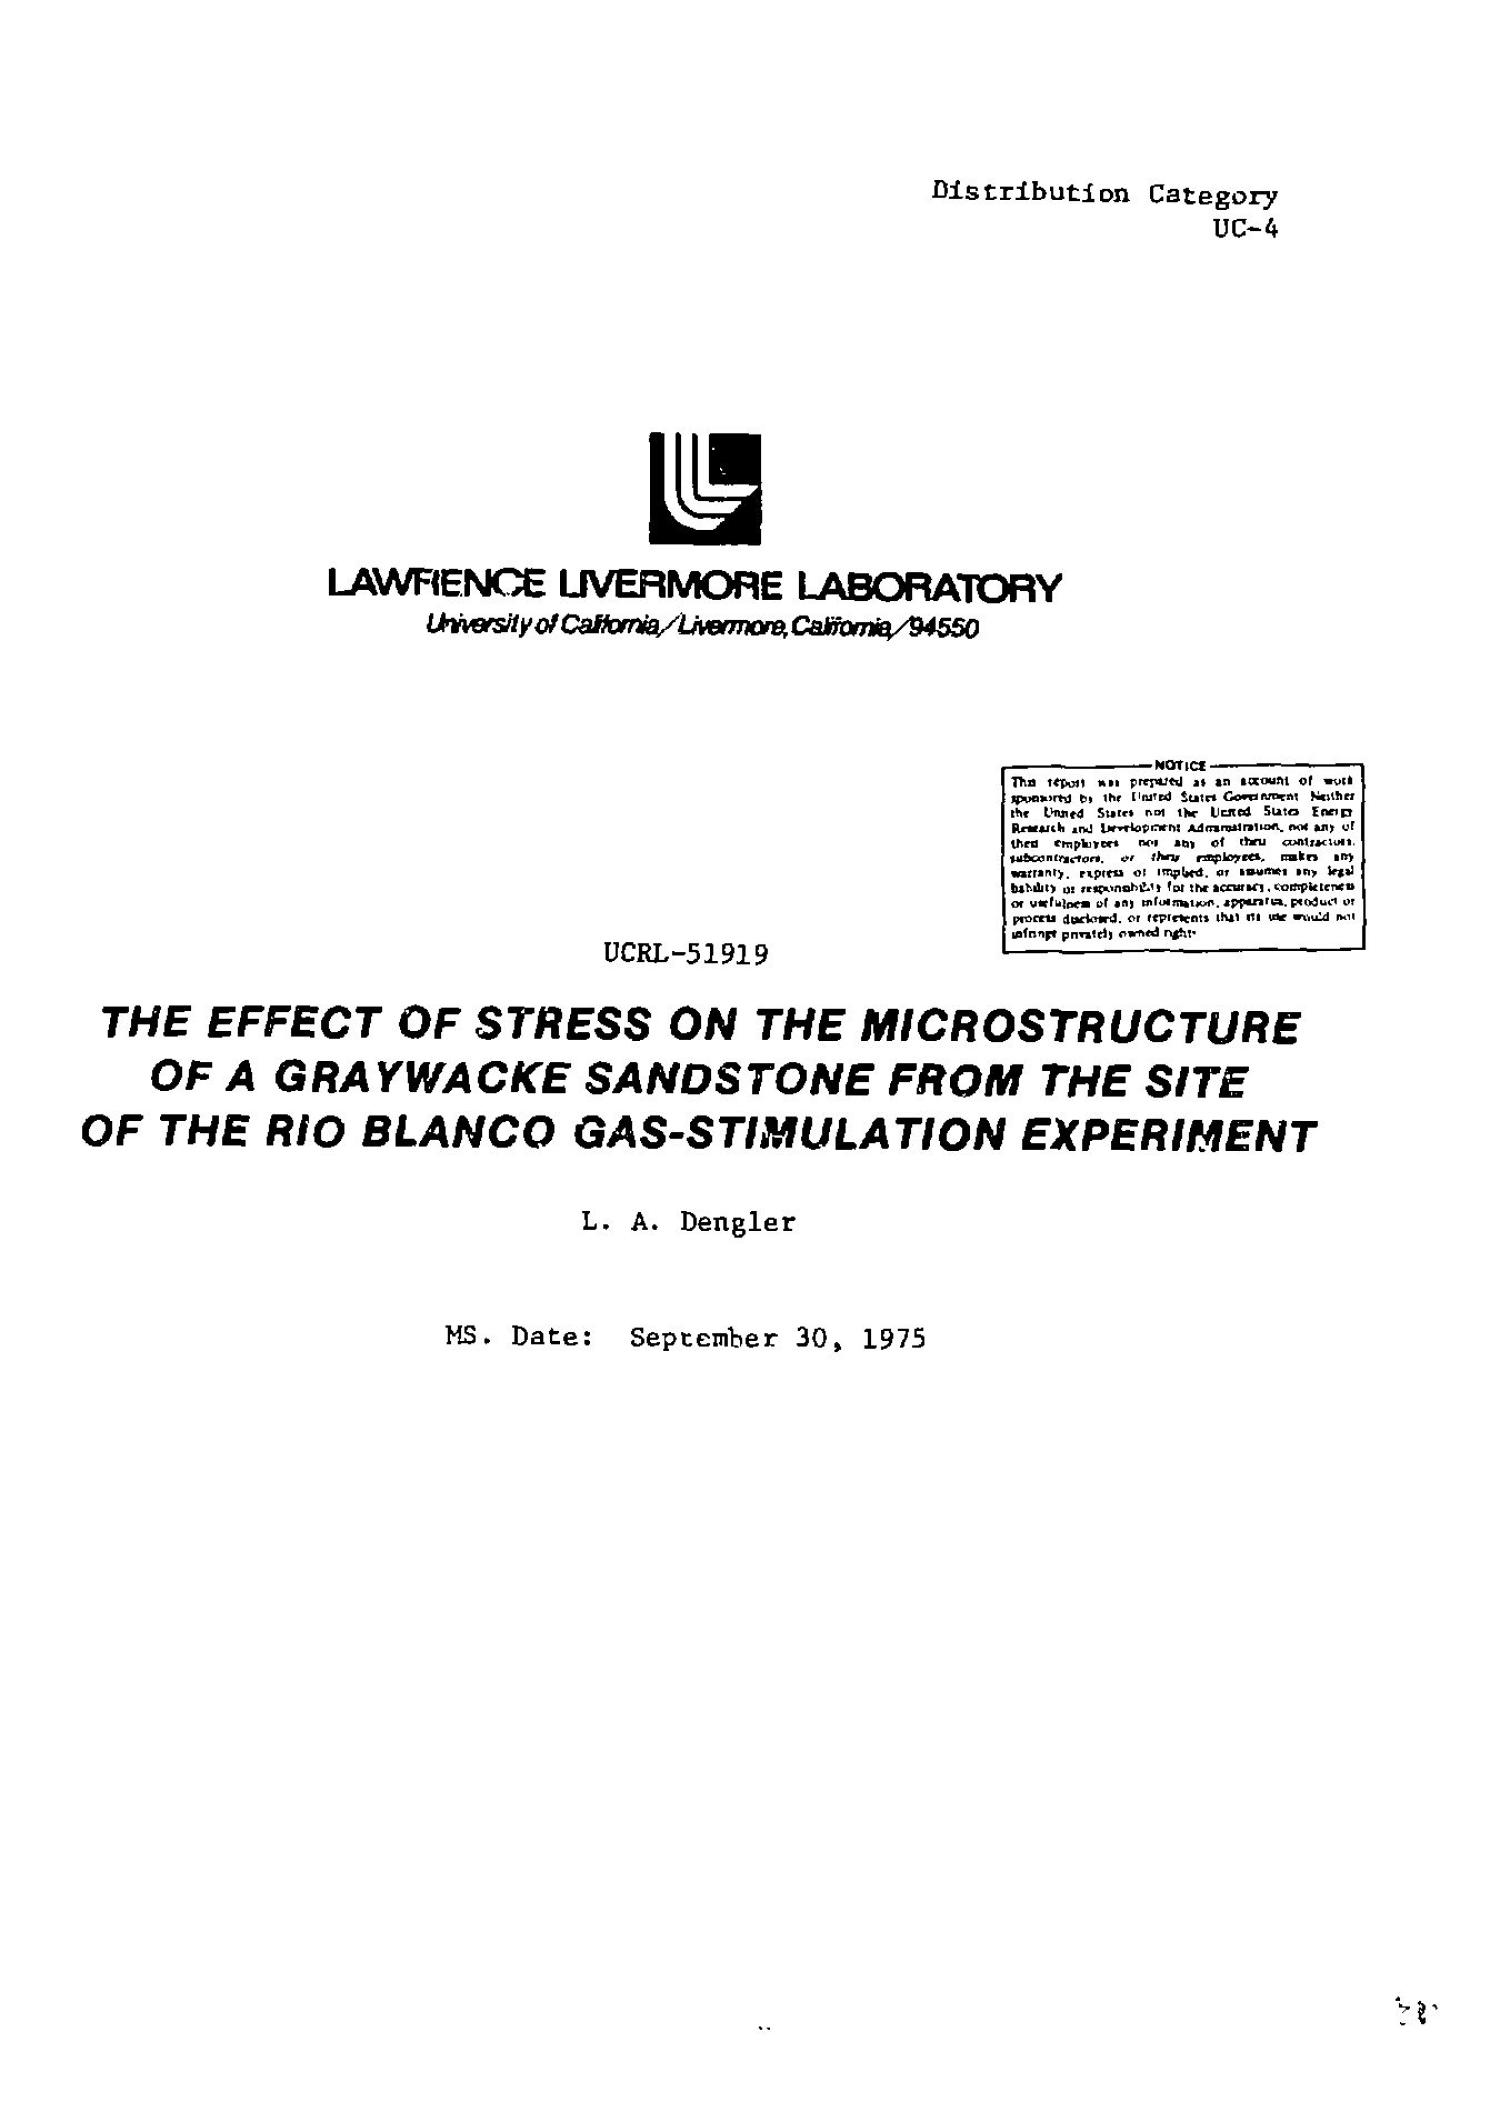 Effect of stress on the microstructure of a graywacke sandstone from the site of the Rio Blanco gas-stimulation experiment                                                                                                      [Sequence #]: 3 of 36